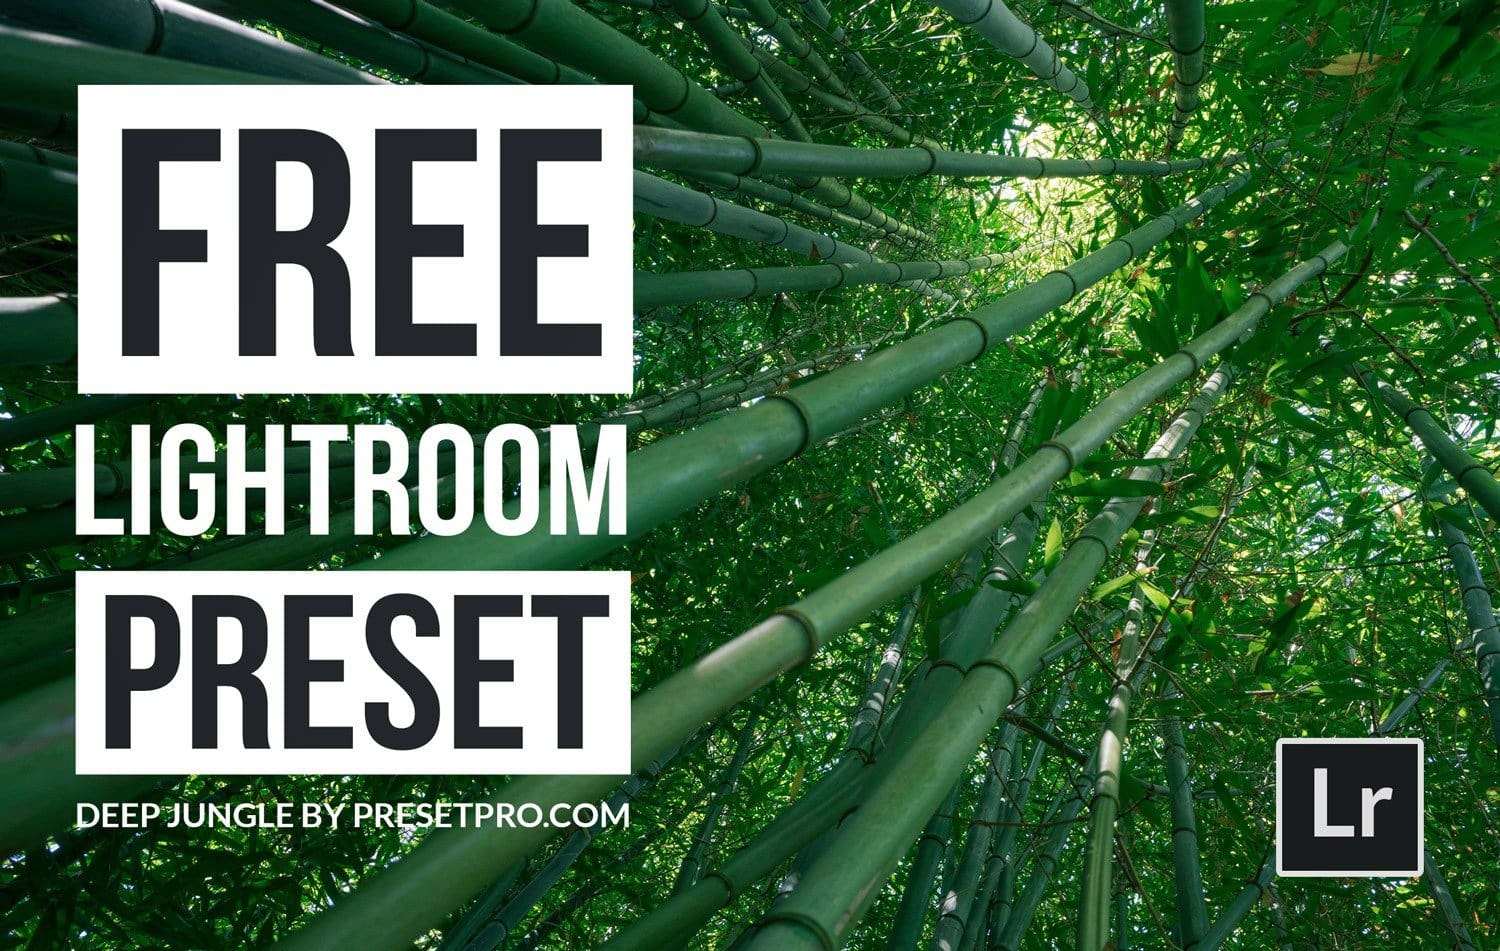 Free-Lightroom-Preset-Deep-Jungle-Cover-Presetpro.com